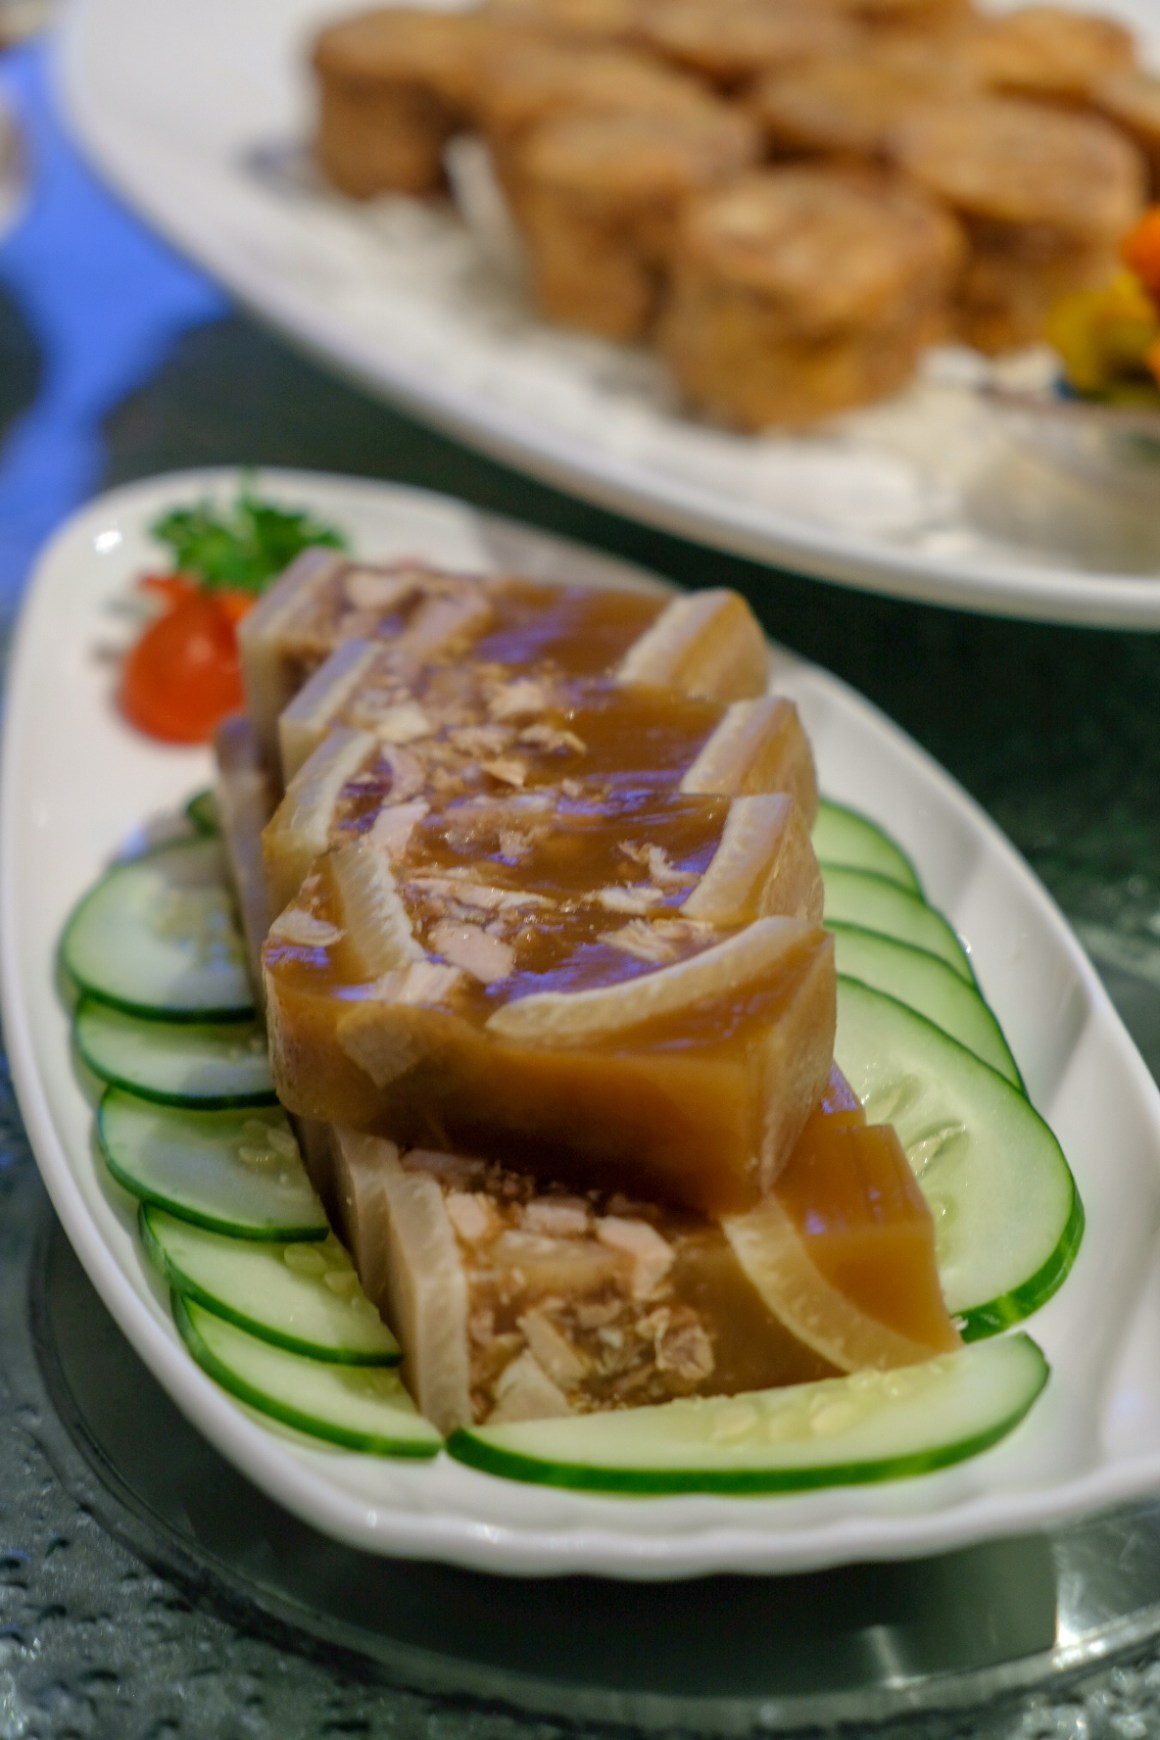 Zui Yu Xuan Teochew Restaurant At Far East Square - Pig Trotter Terrine ($13 per portion)